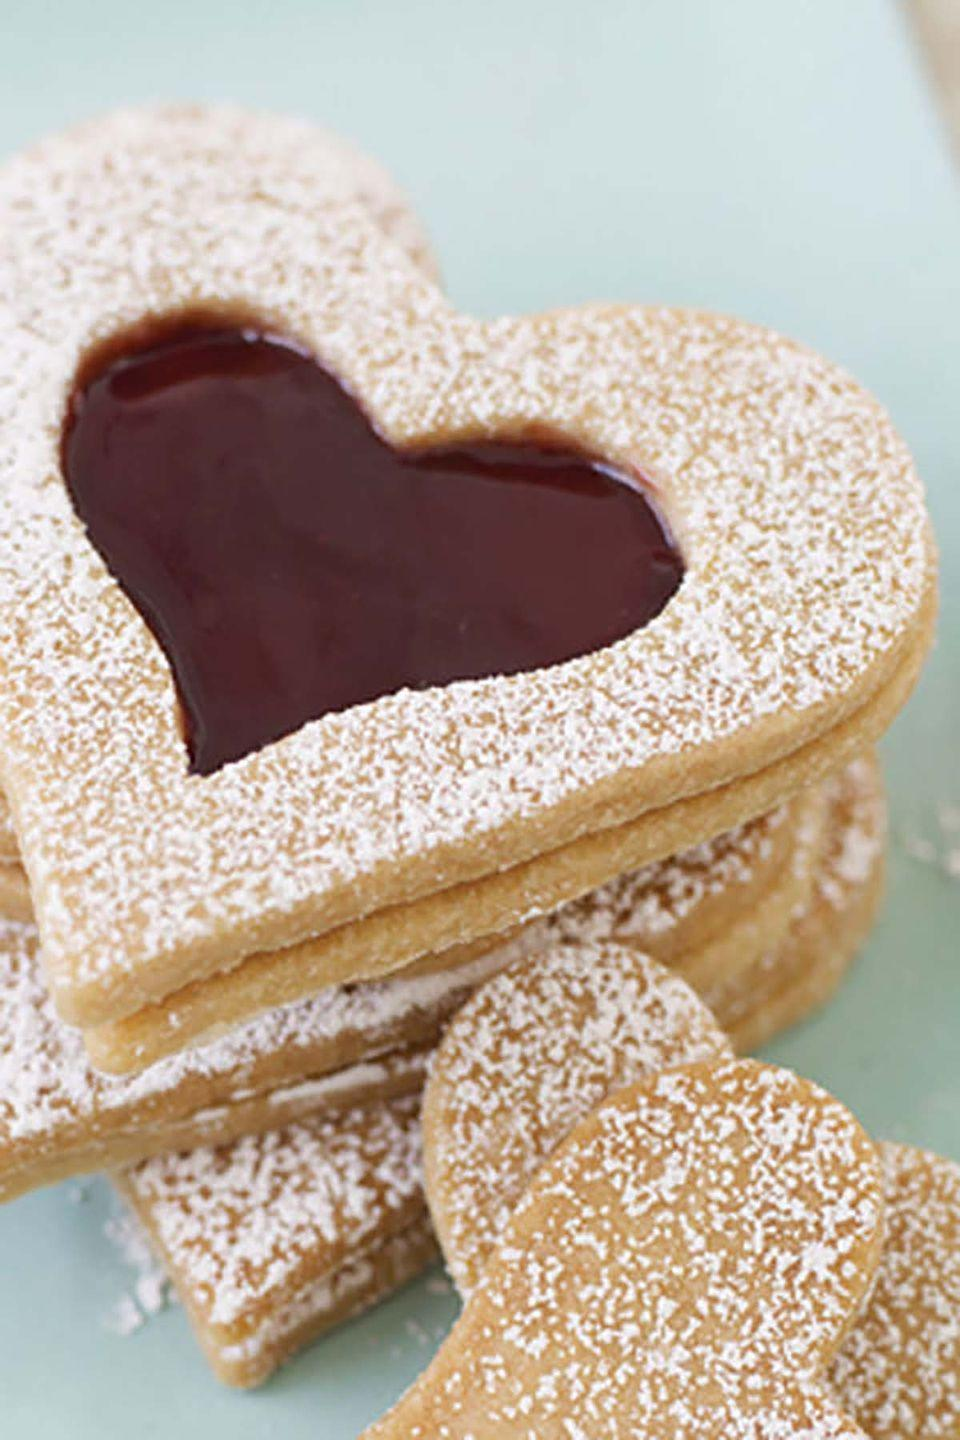 """<p>Show your love for mom with these jam-filled, buttery-vanilla hearts, coated with a sprinkle of confectioners' sugar for added sweetness.</p><p><strong><a href=""""https://www.countryliving.com/food-drinks/recipes/a6582/vanilla-shortbread-hearts/"""" rel=""""nofollow noopener"""" target=""""_blank"""" data-ylk=""""slk:Get the recipe"""" class=""""link rapid-noclick-resp"""">Get the recipe</a>.</strong></p>"""